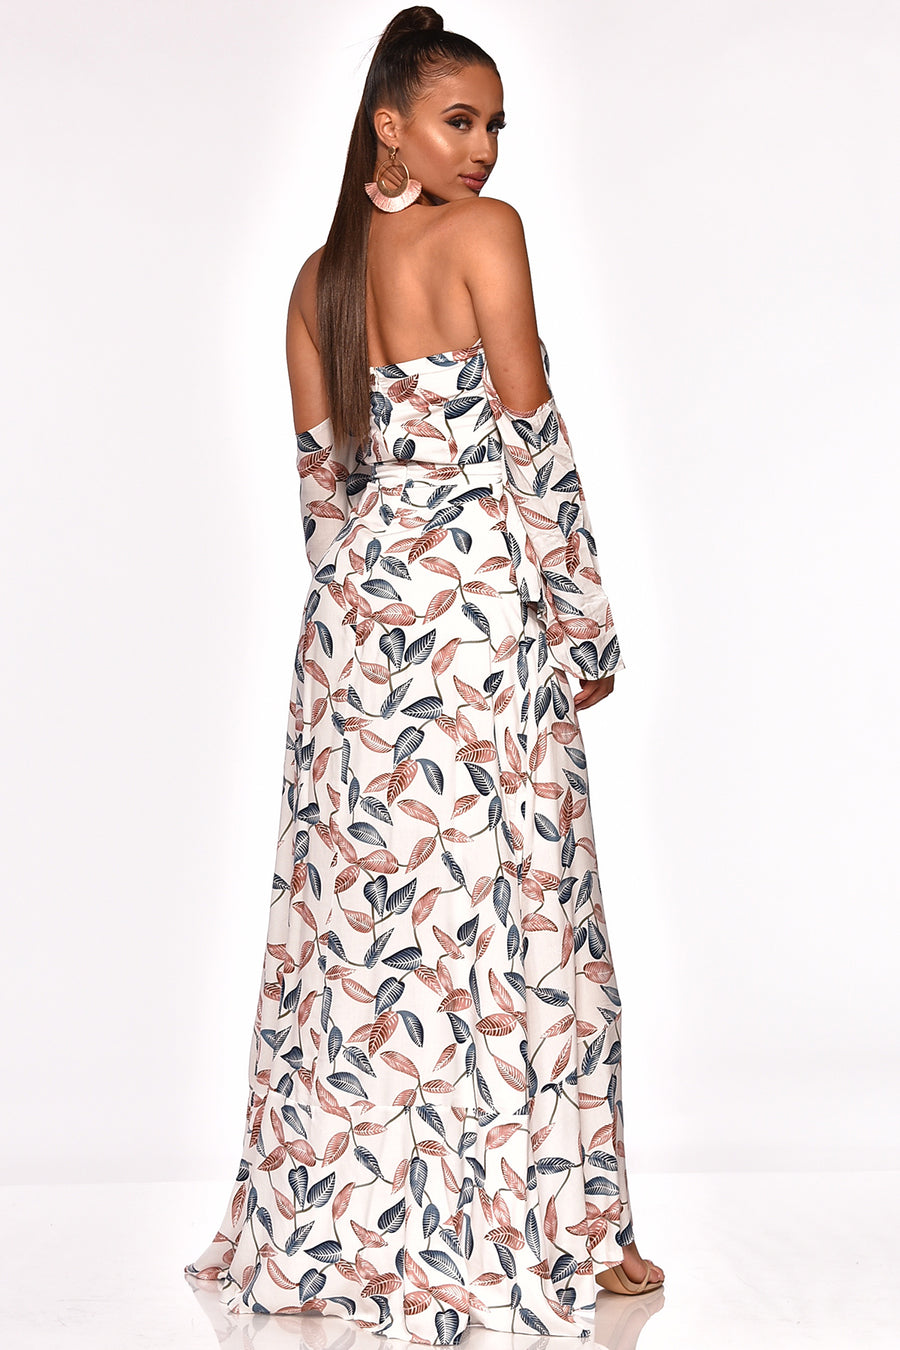 FOREVER IN MY DREAMS MAXI DRESS